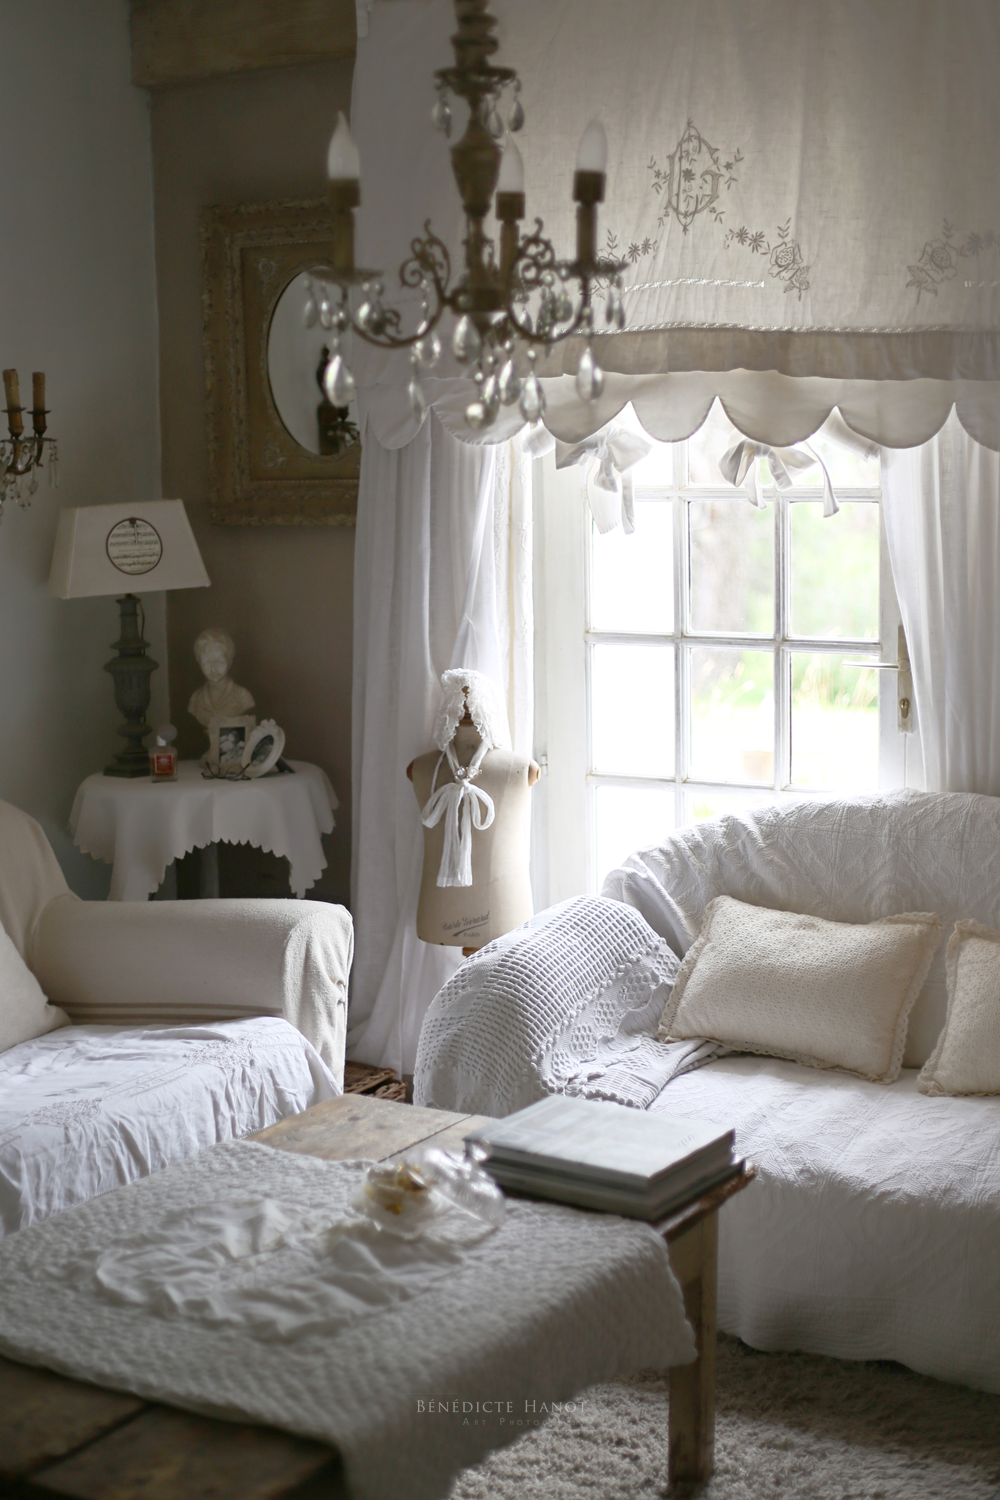 salon de charme salon romantique salon shabby chic le. Black Bedroom Furniture Sets. Home Design Ideas